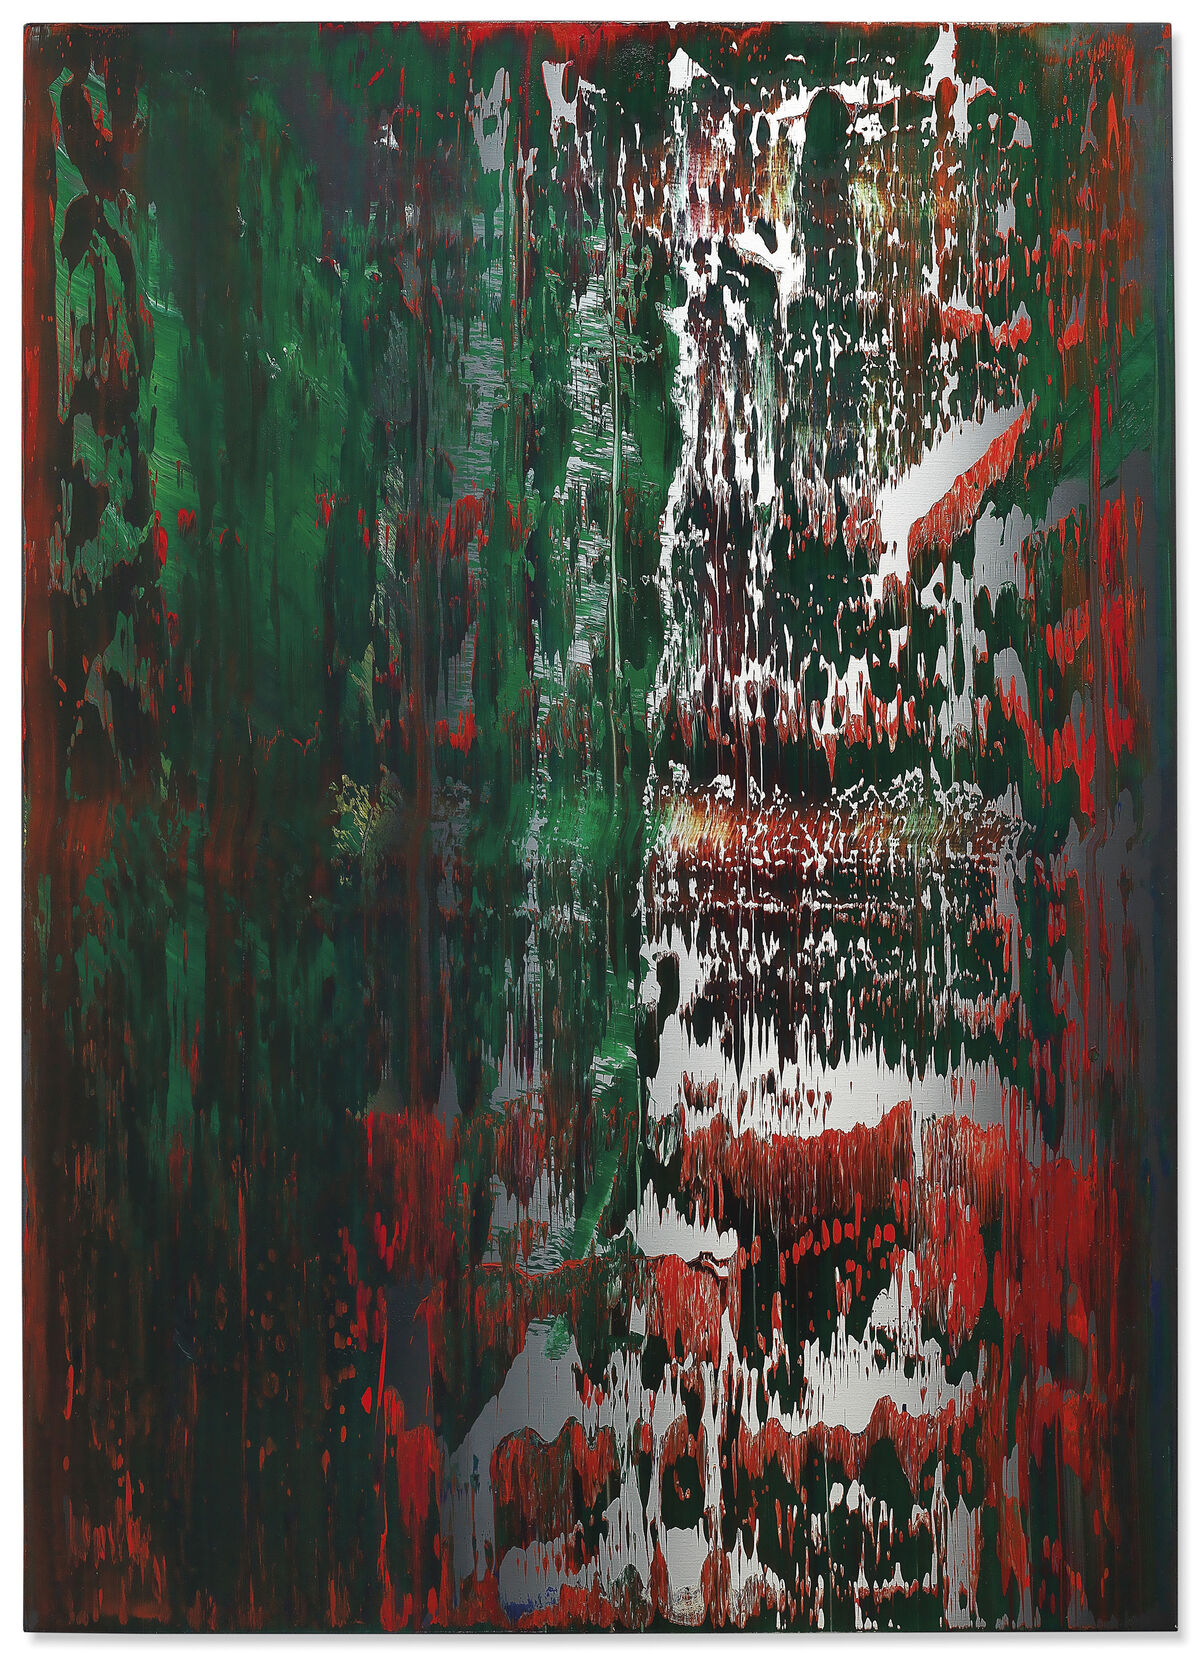 Gerhard Richter, A B, Tower, 1987. Courtesy of Christie's Images Ltd. 2019.